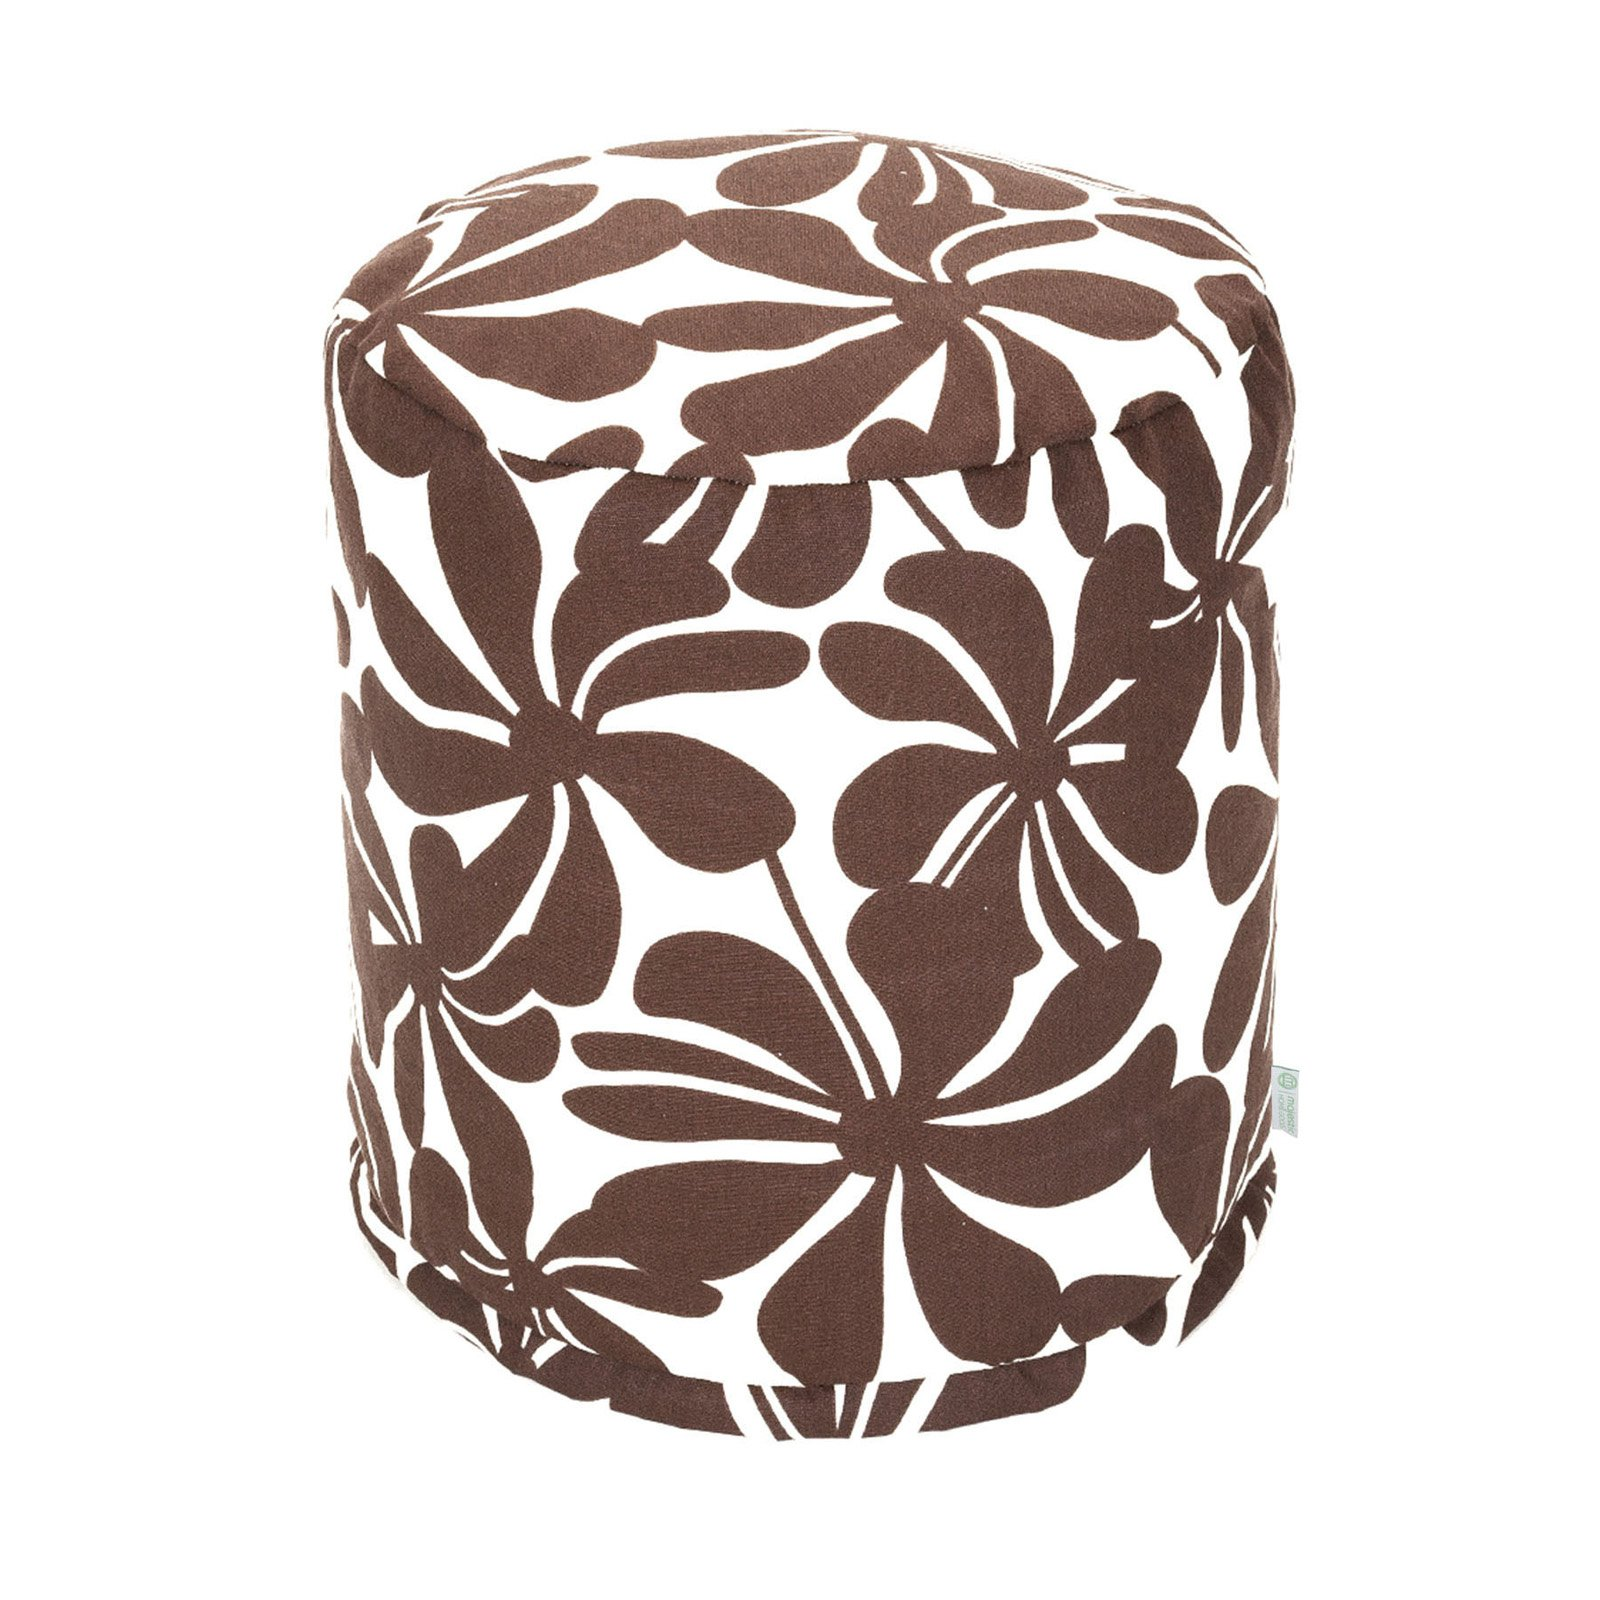 Majestic Home Goods Plantation Small Pouf, Indoor/Outdoor